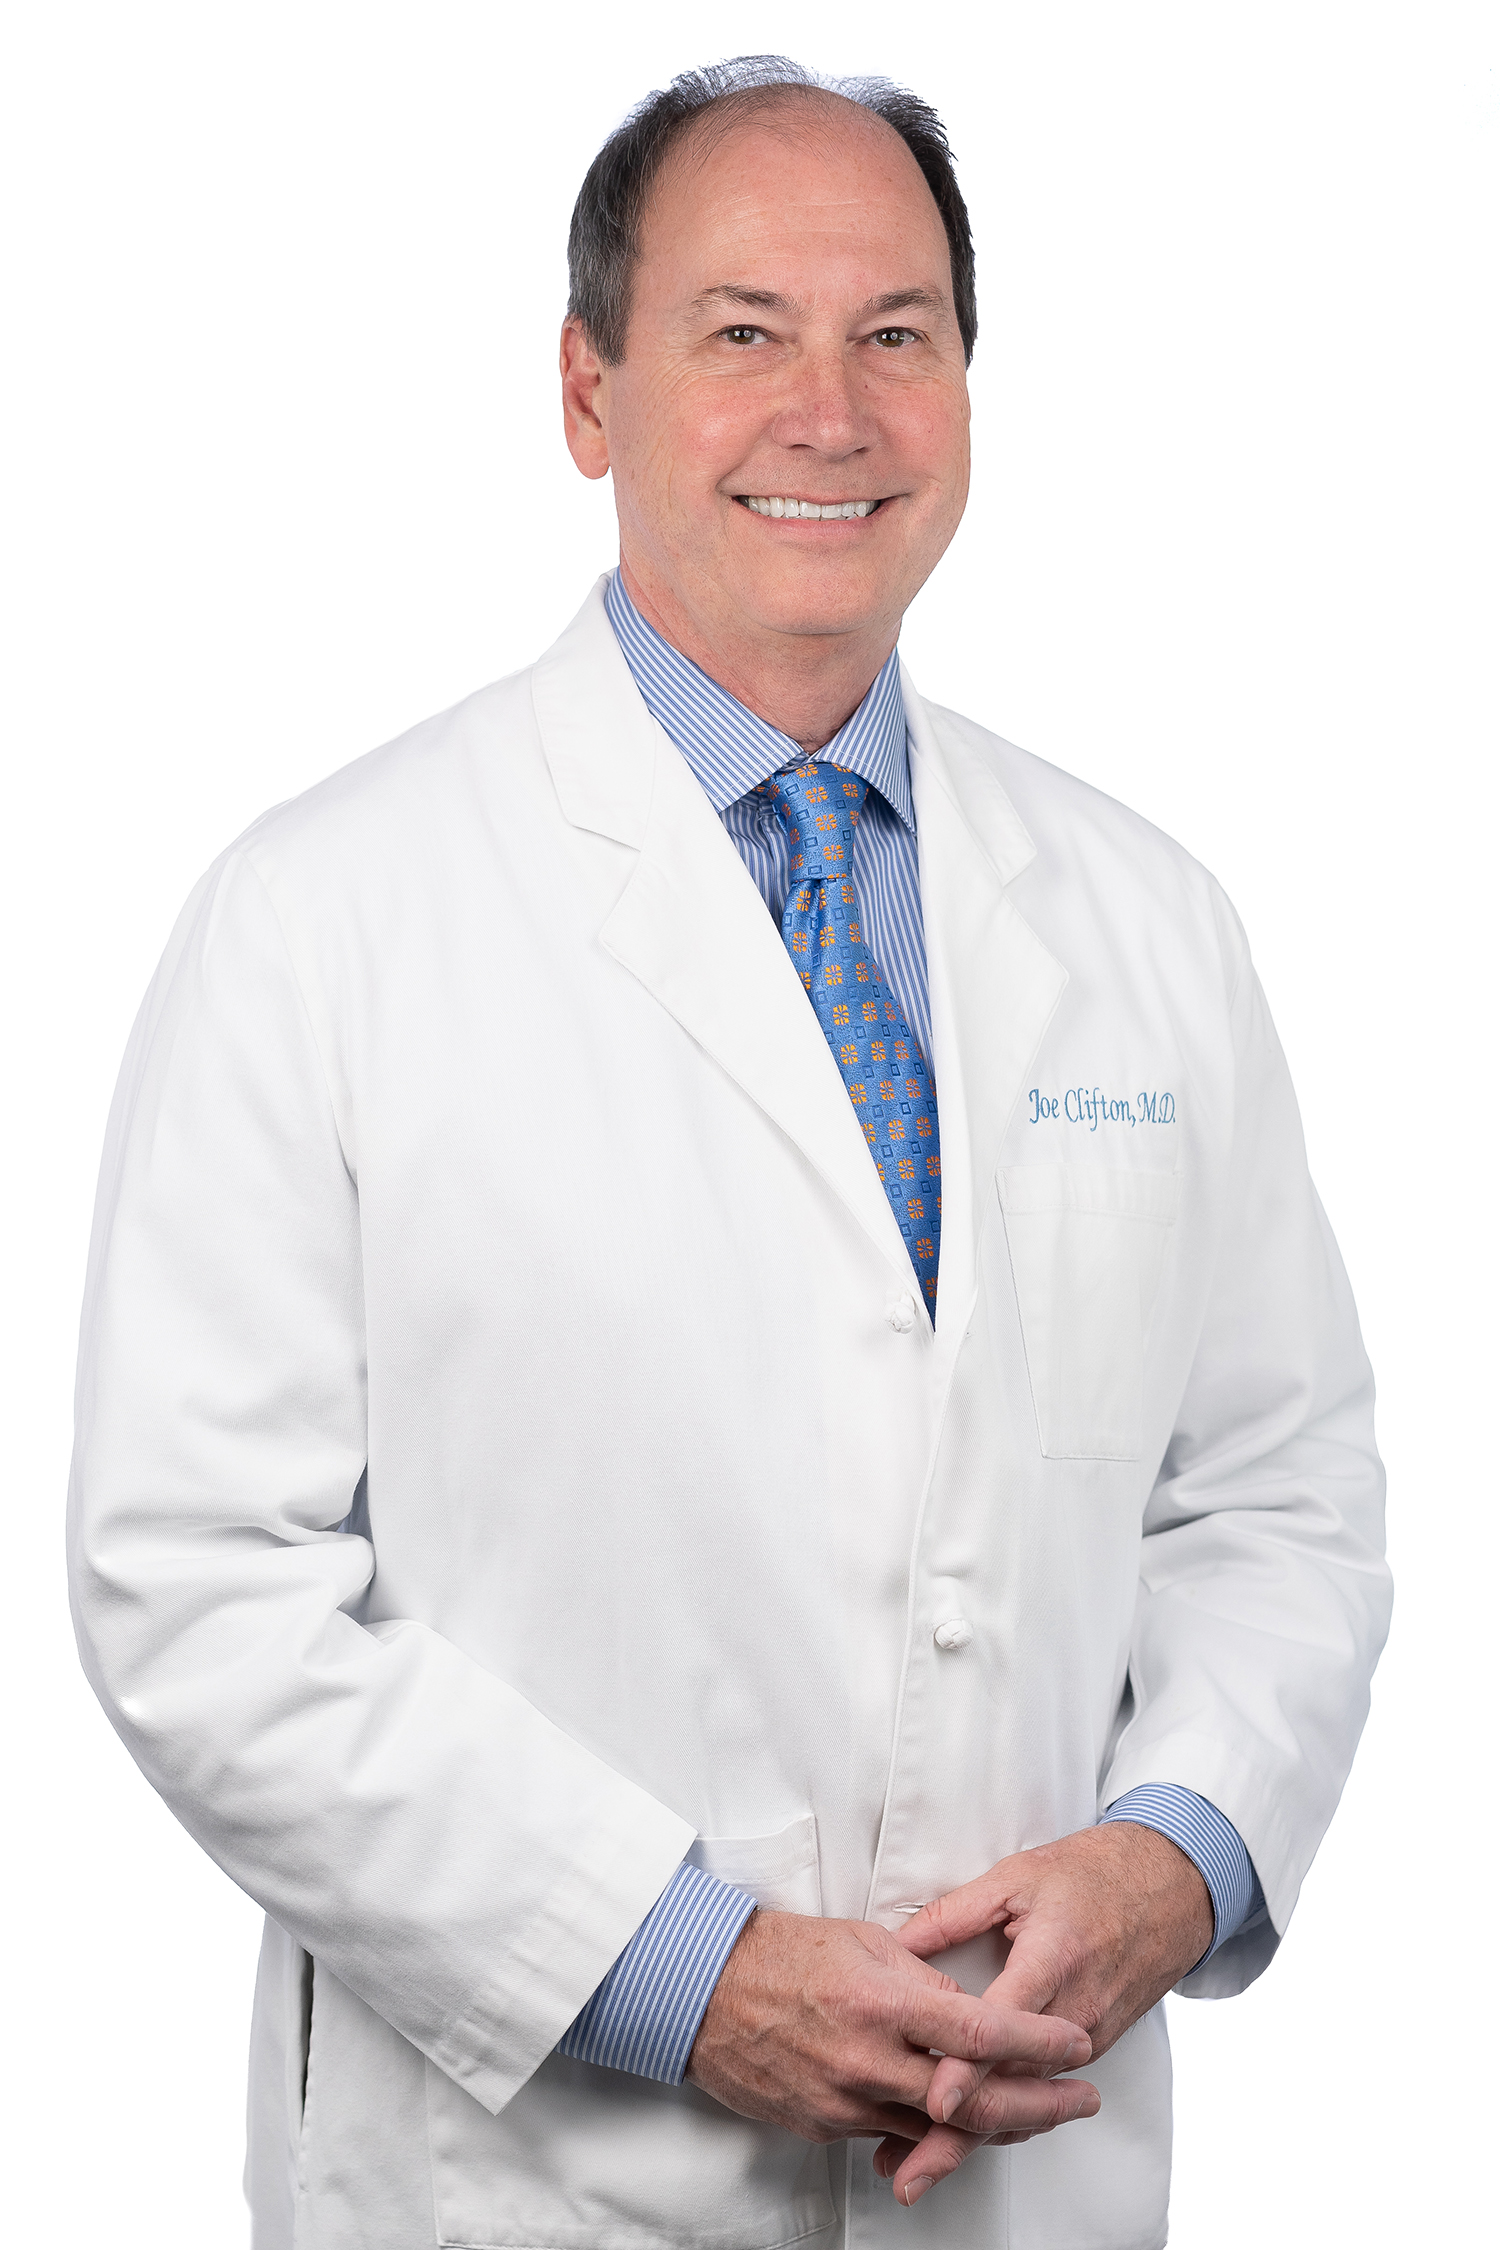 Joe Clifton, MD